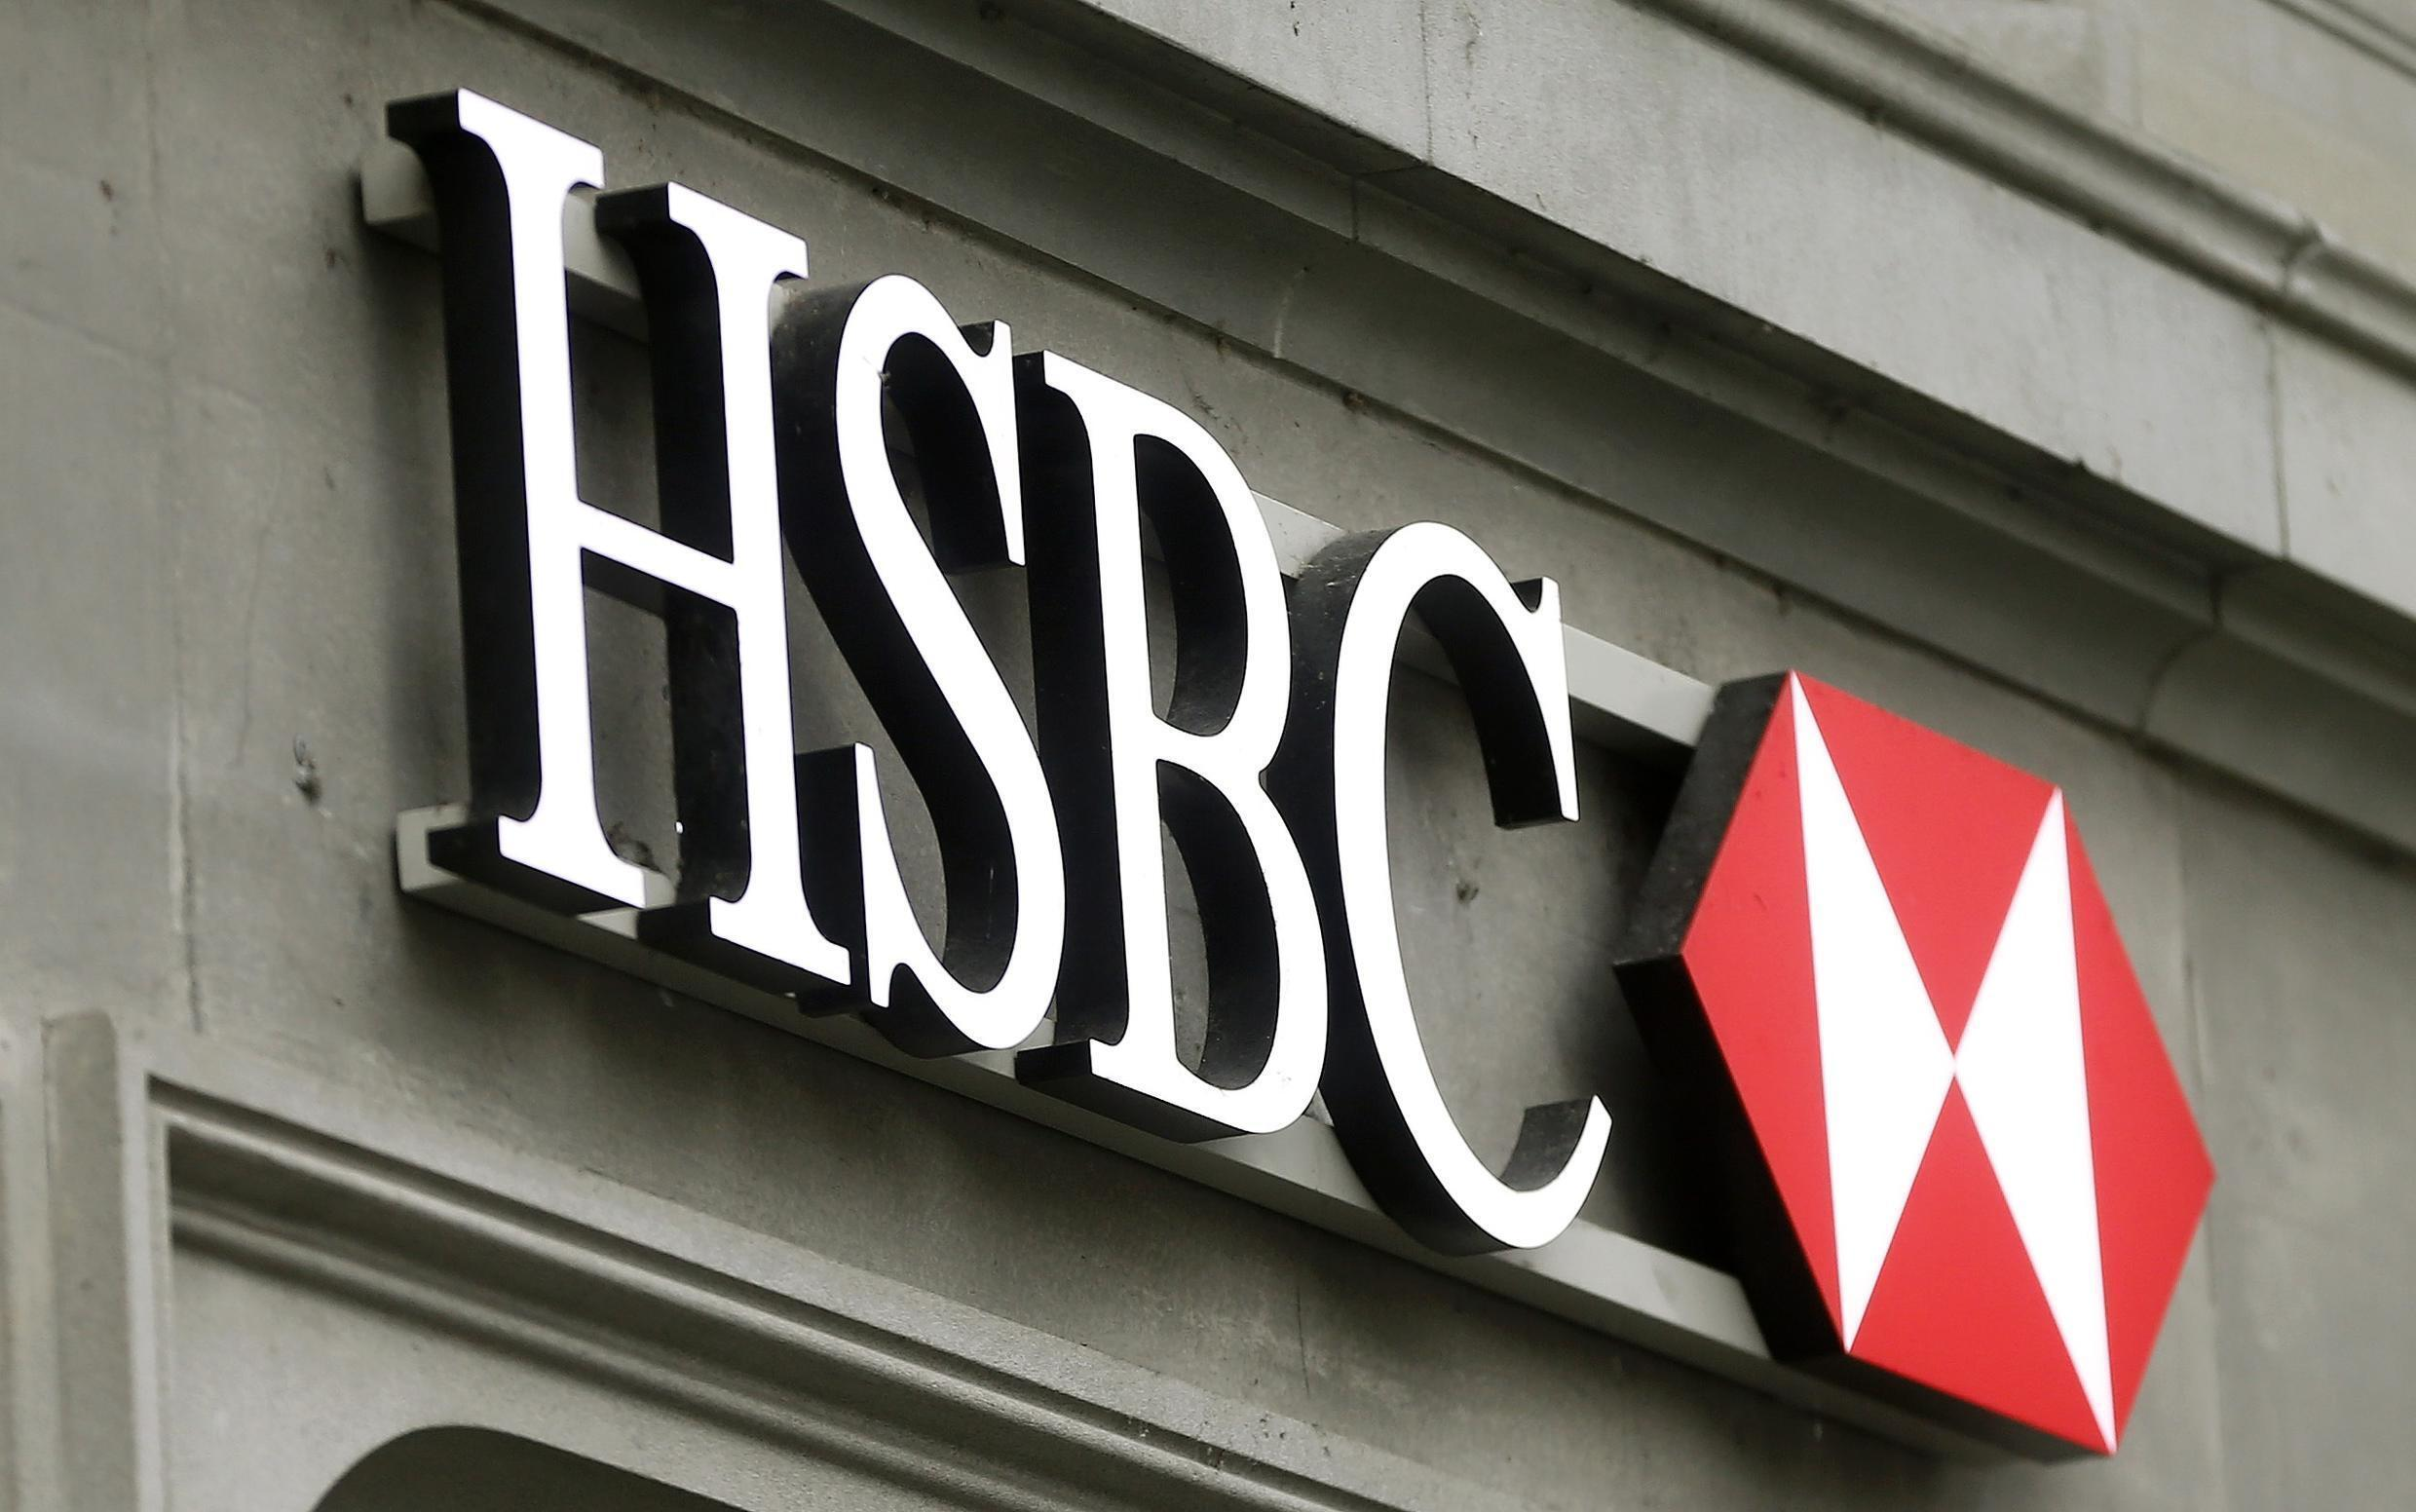 The report says the private Swiss arm of HSBC helped clients avoid tax.